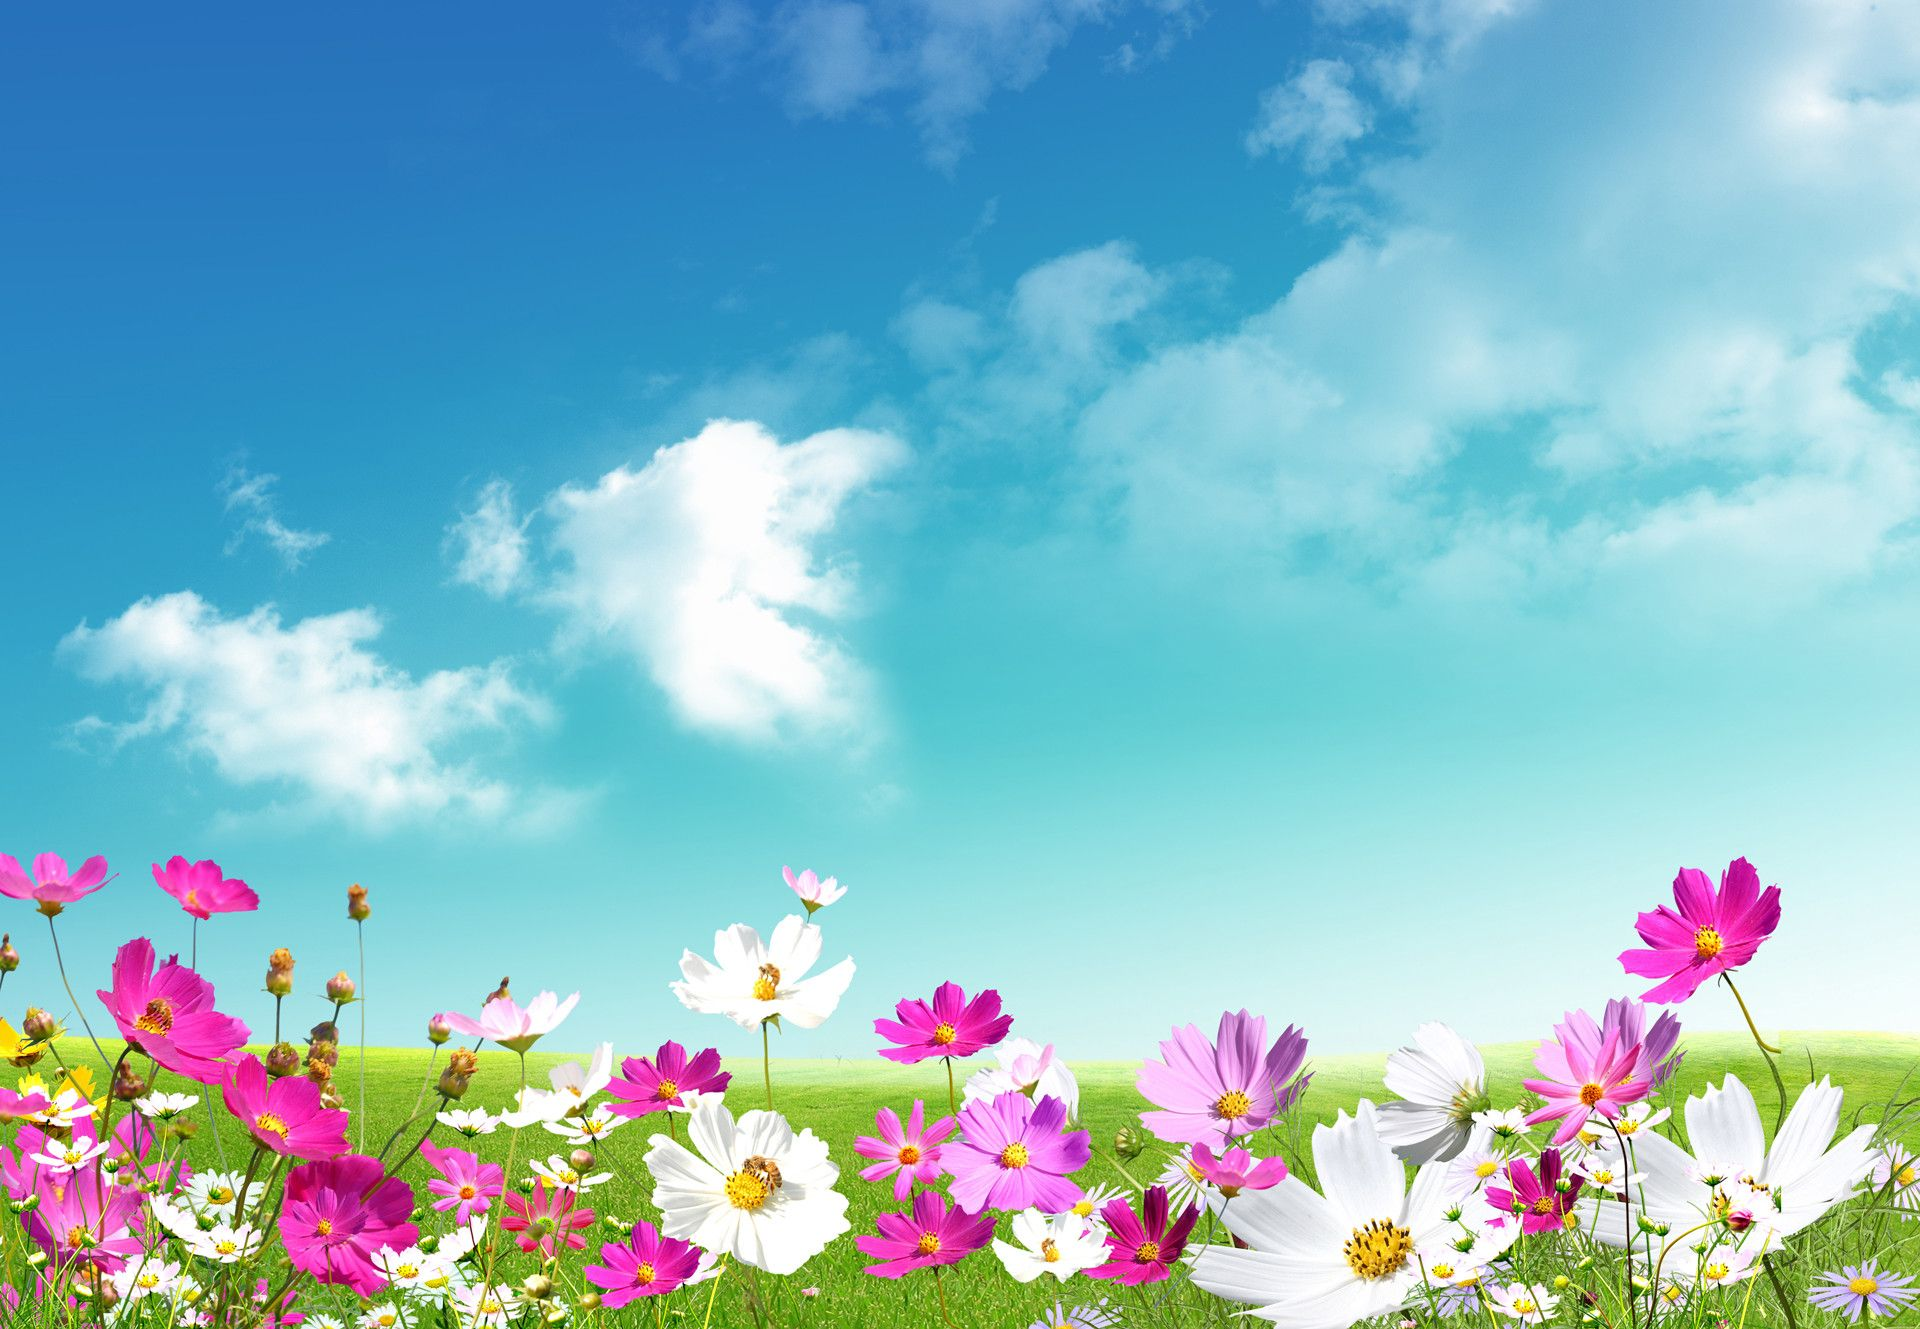 Spring Wallpapers HD download 1920x1329